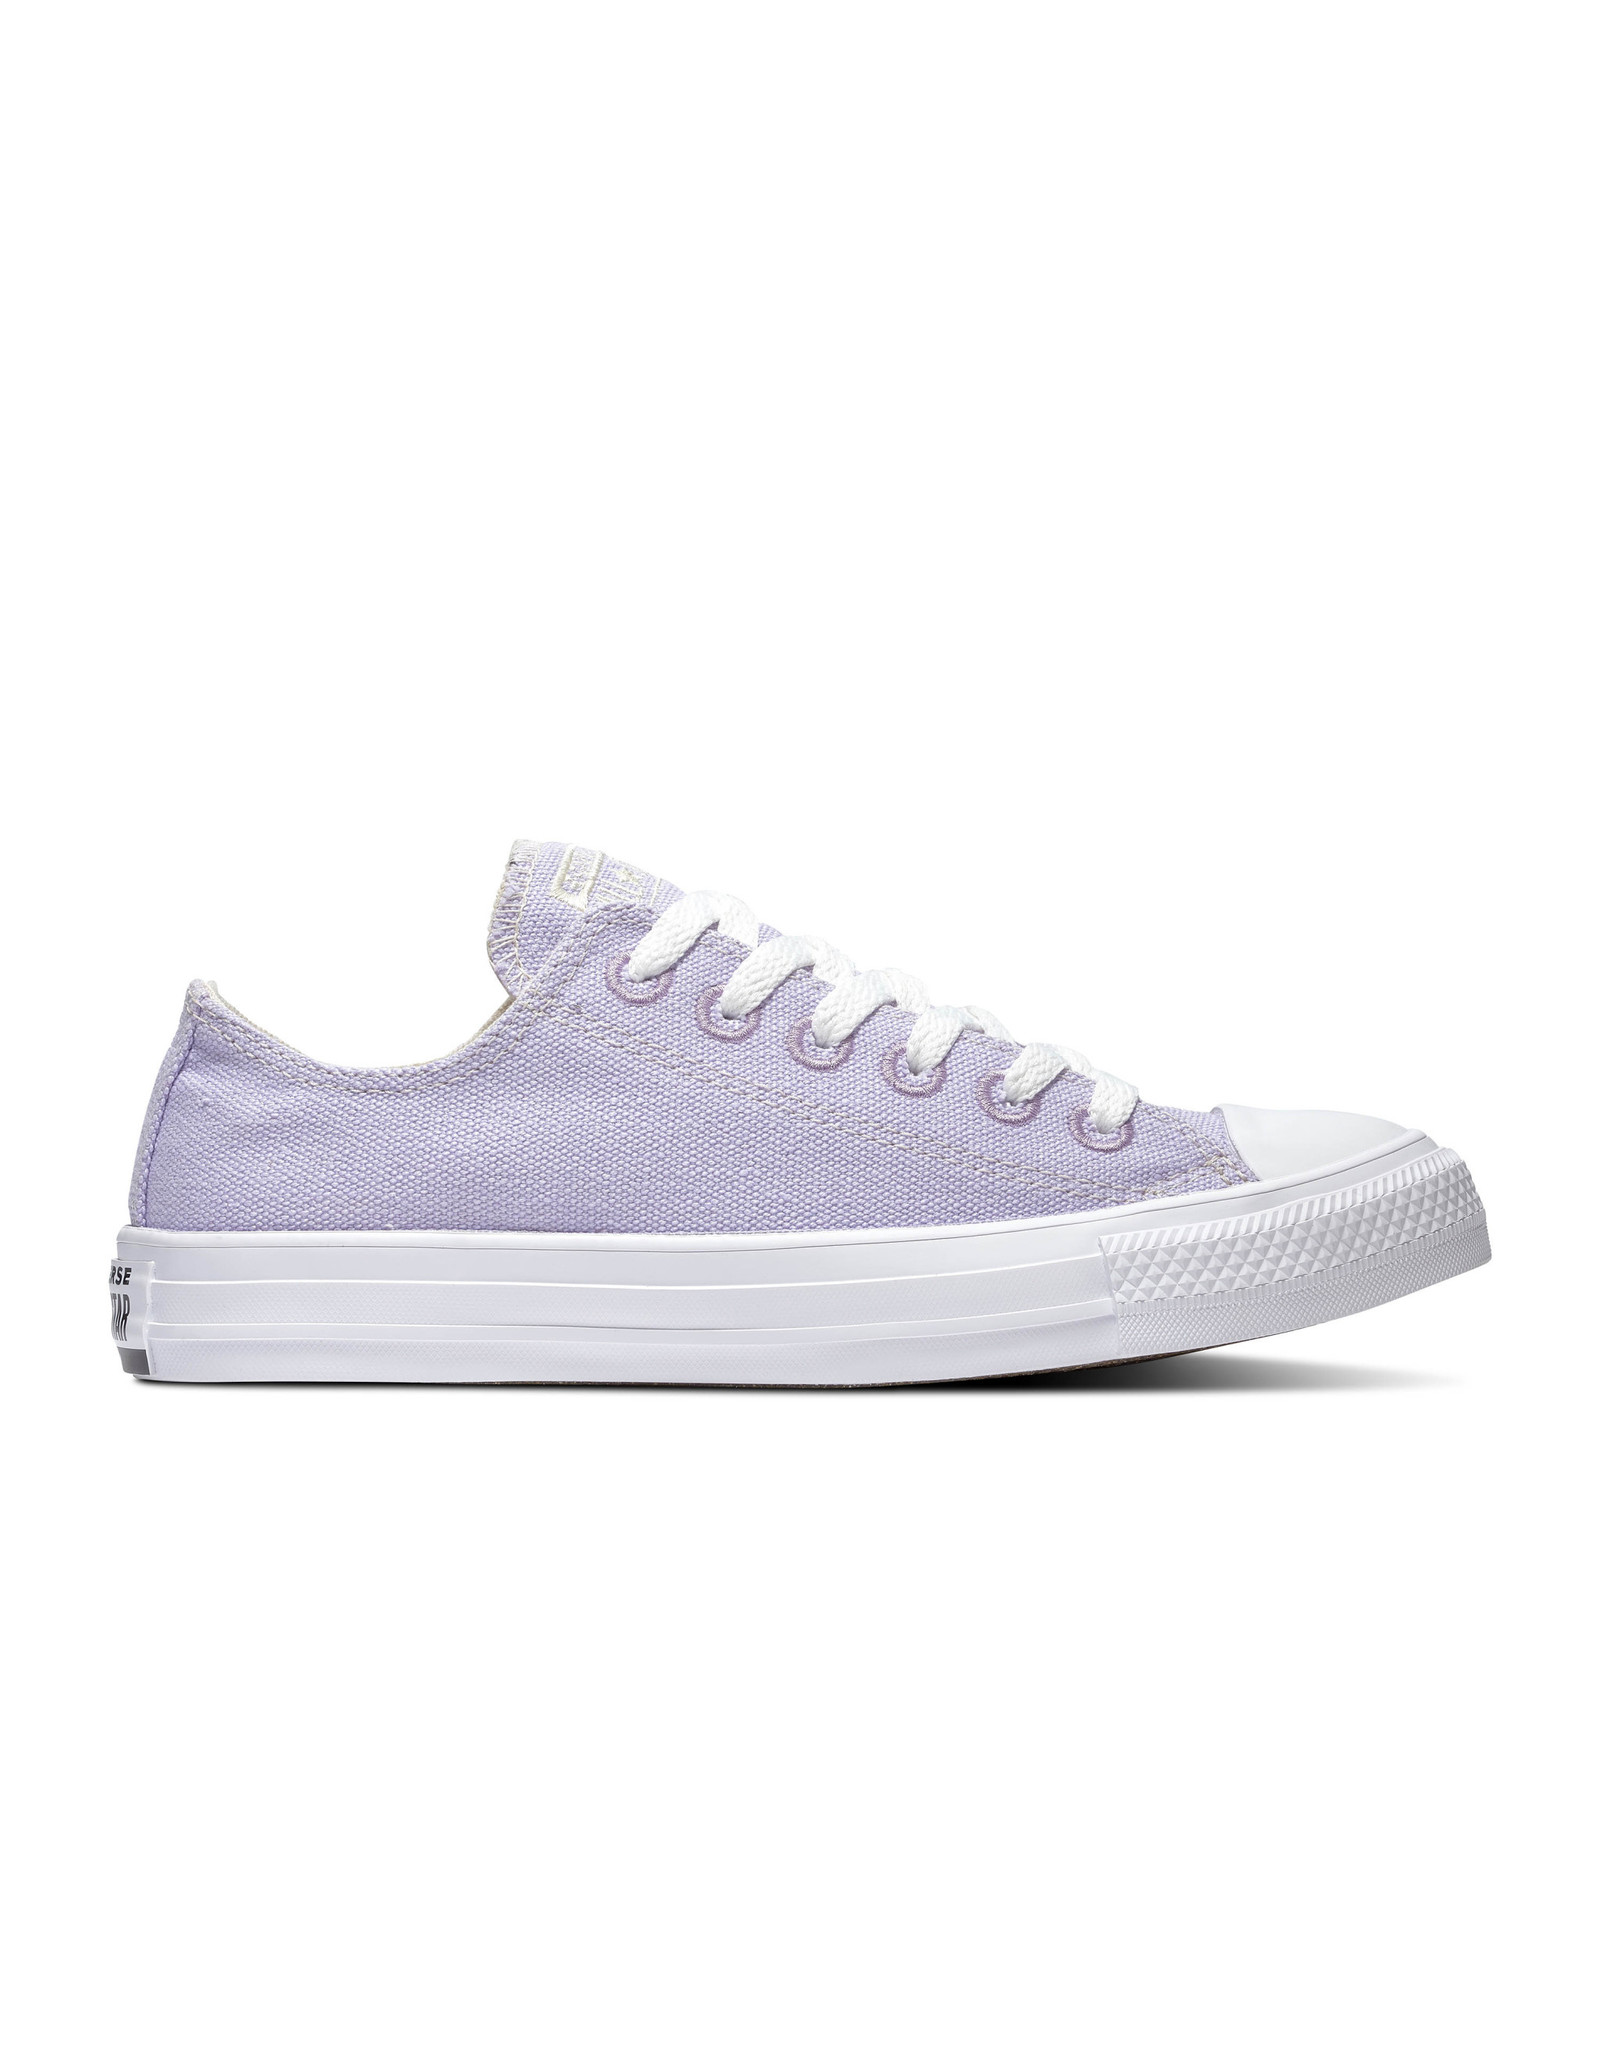 CHUCK TAYLOR ALL STAR  OX MOONSTONE VIOLET/NATURAL/WHITE C14MOV-166744C